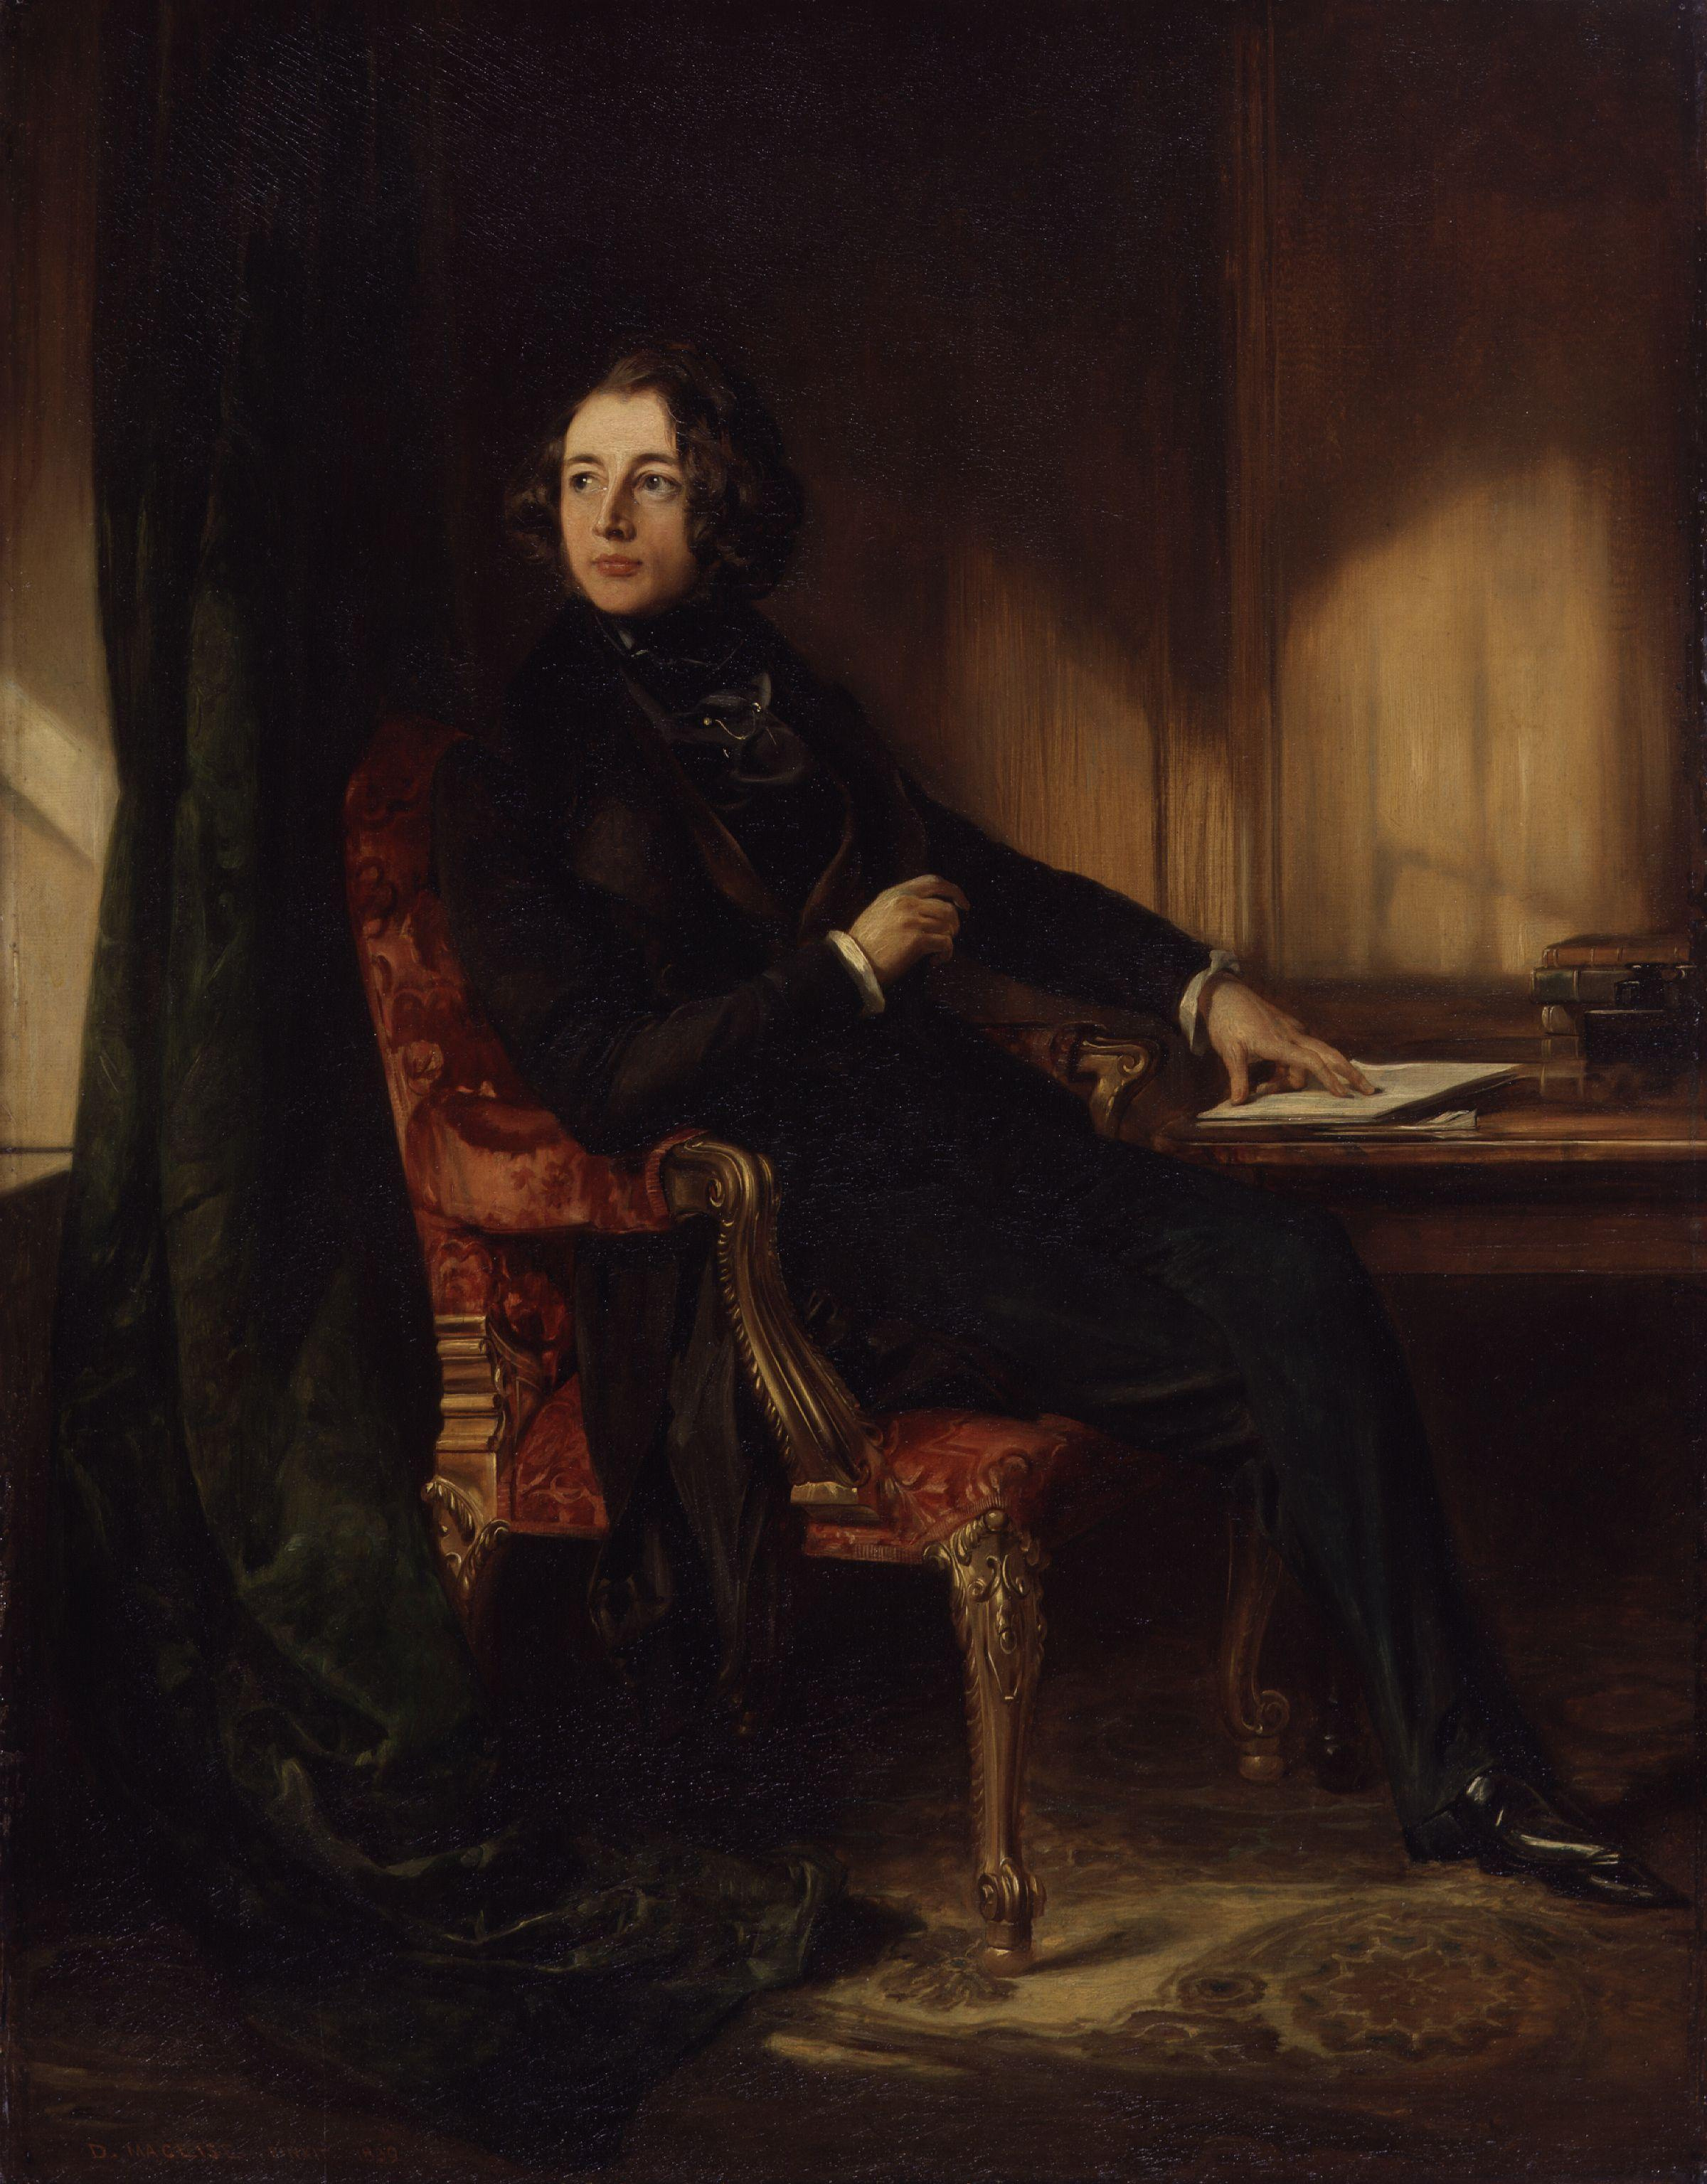 Charles Dickens Young Young Charles Dickens by